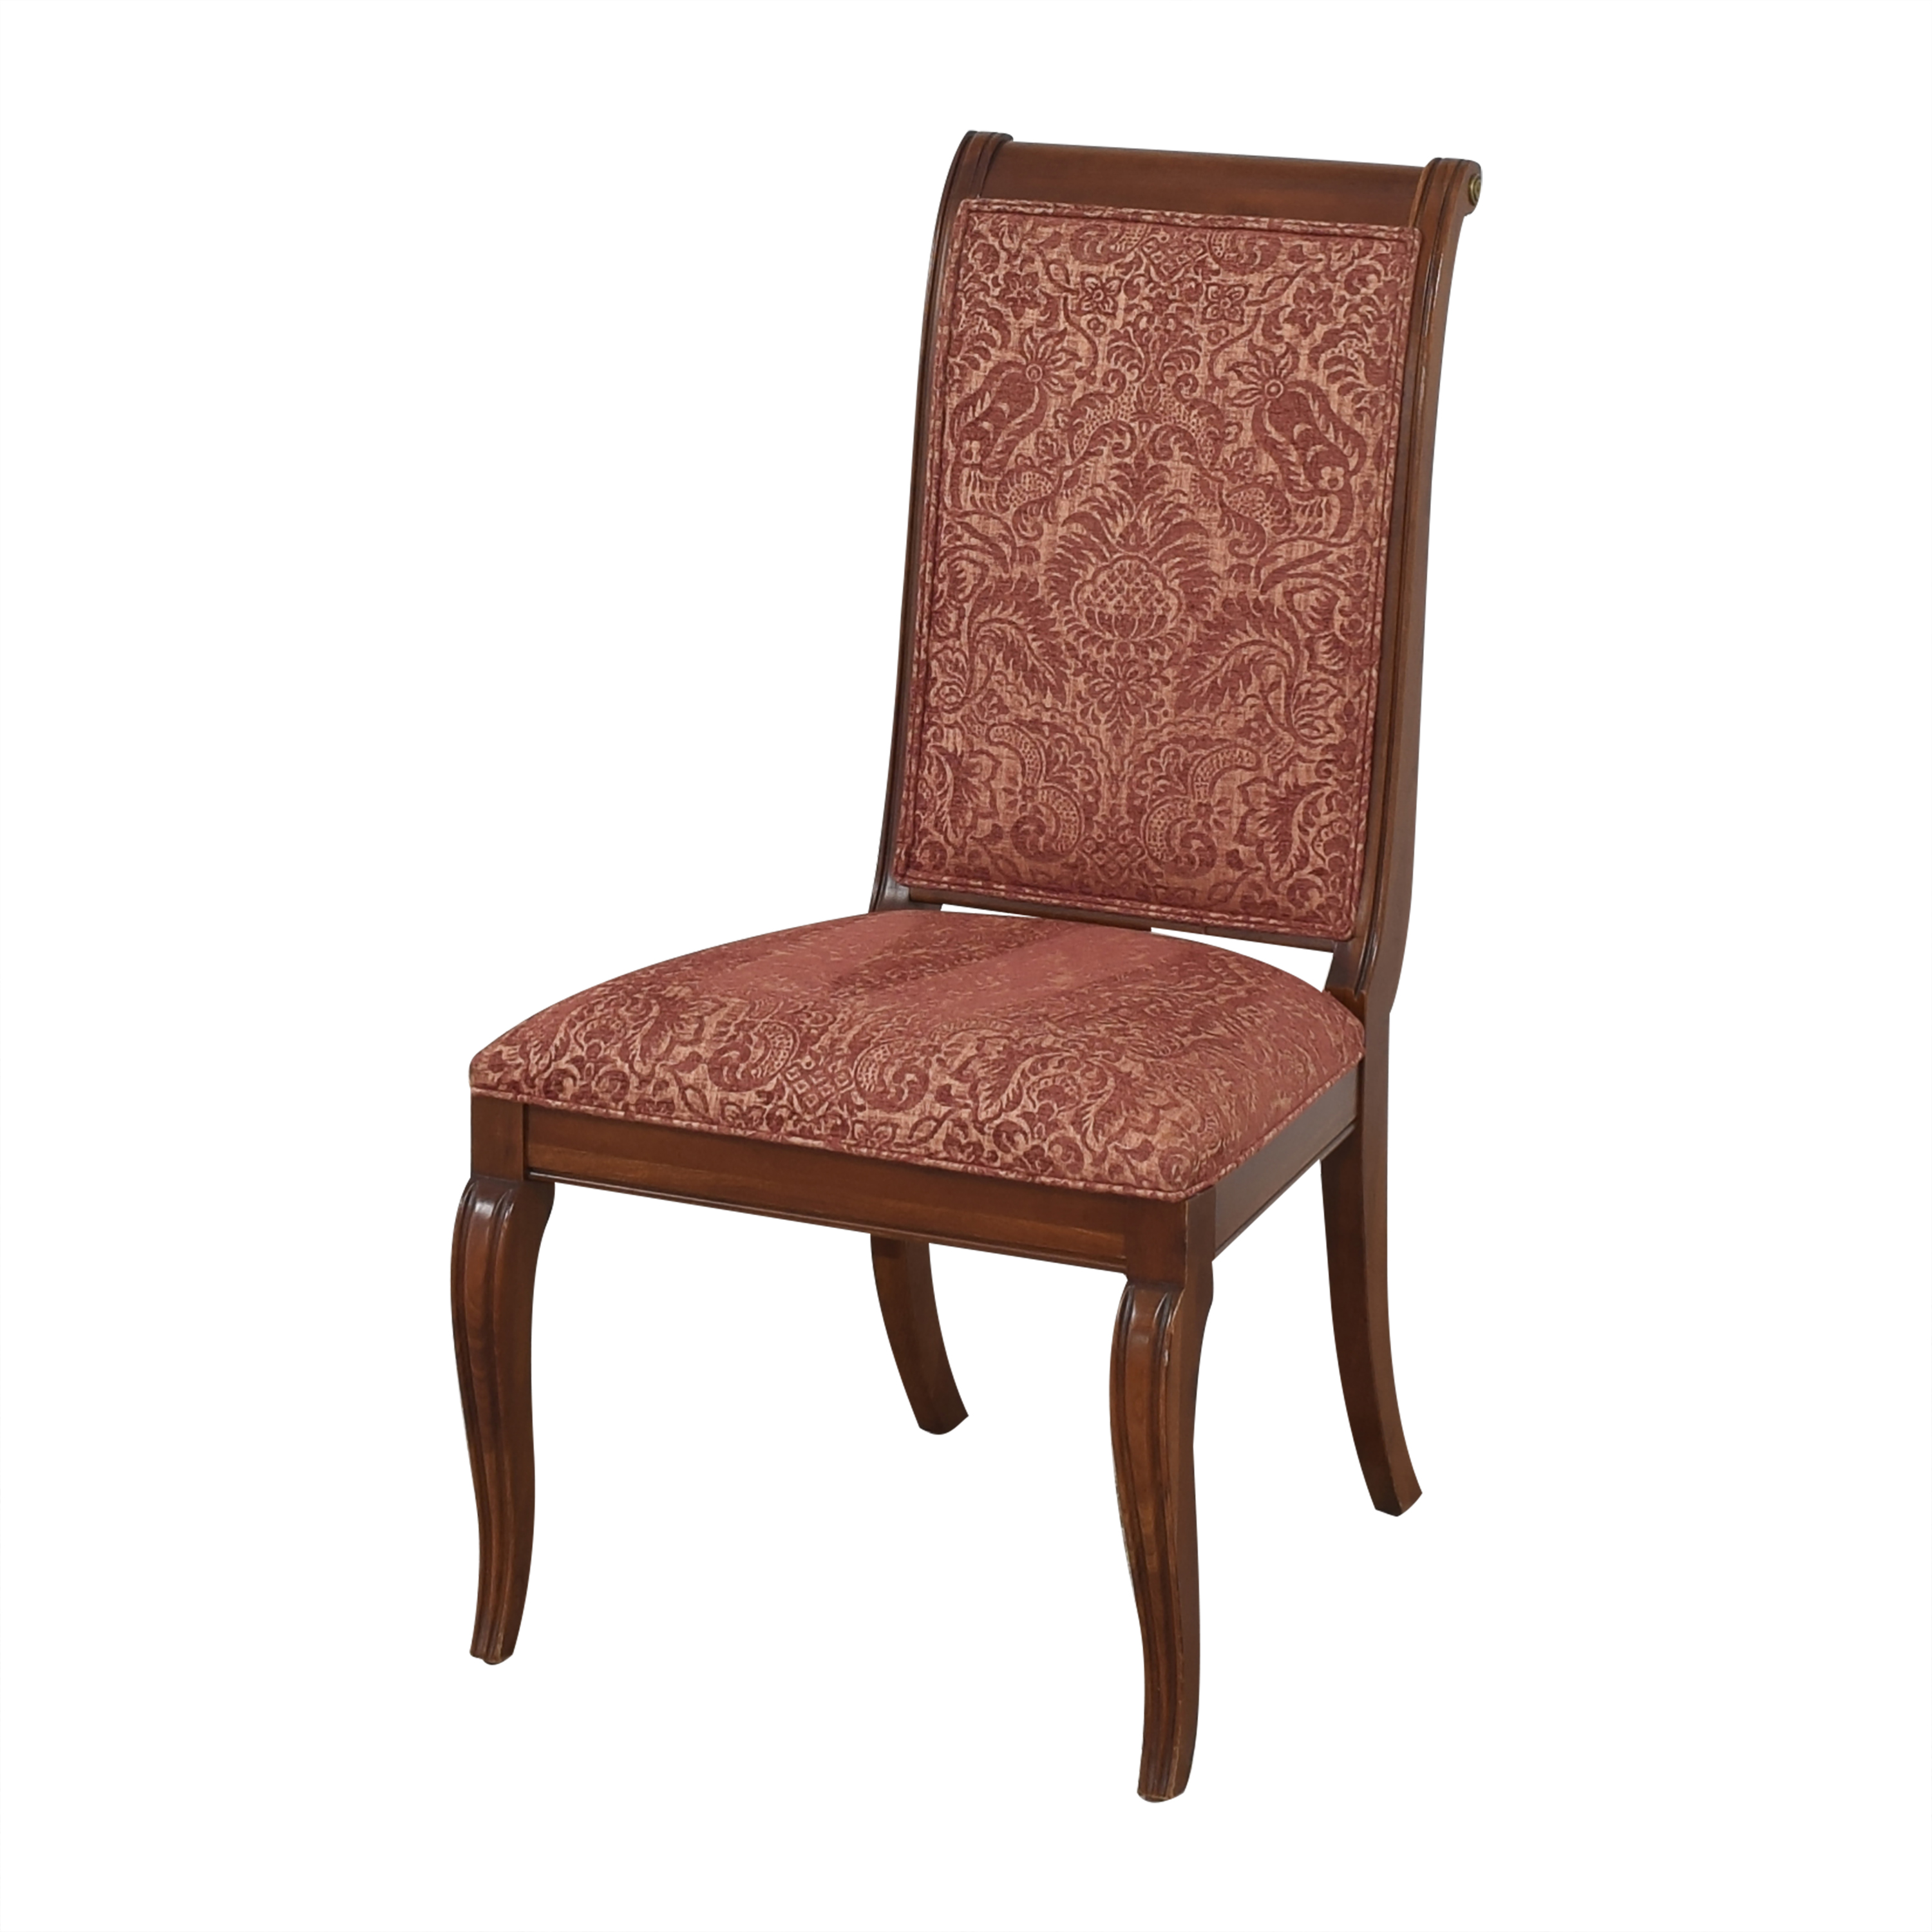 Ethan Allen Ethan Allen Upholstered Dining Side Chairs discount